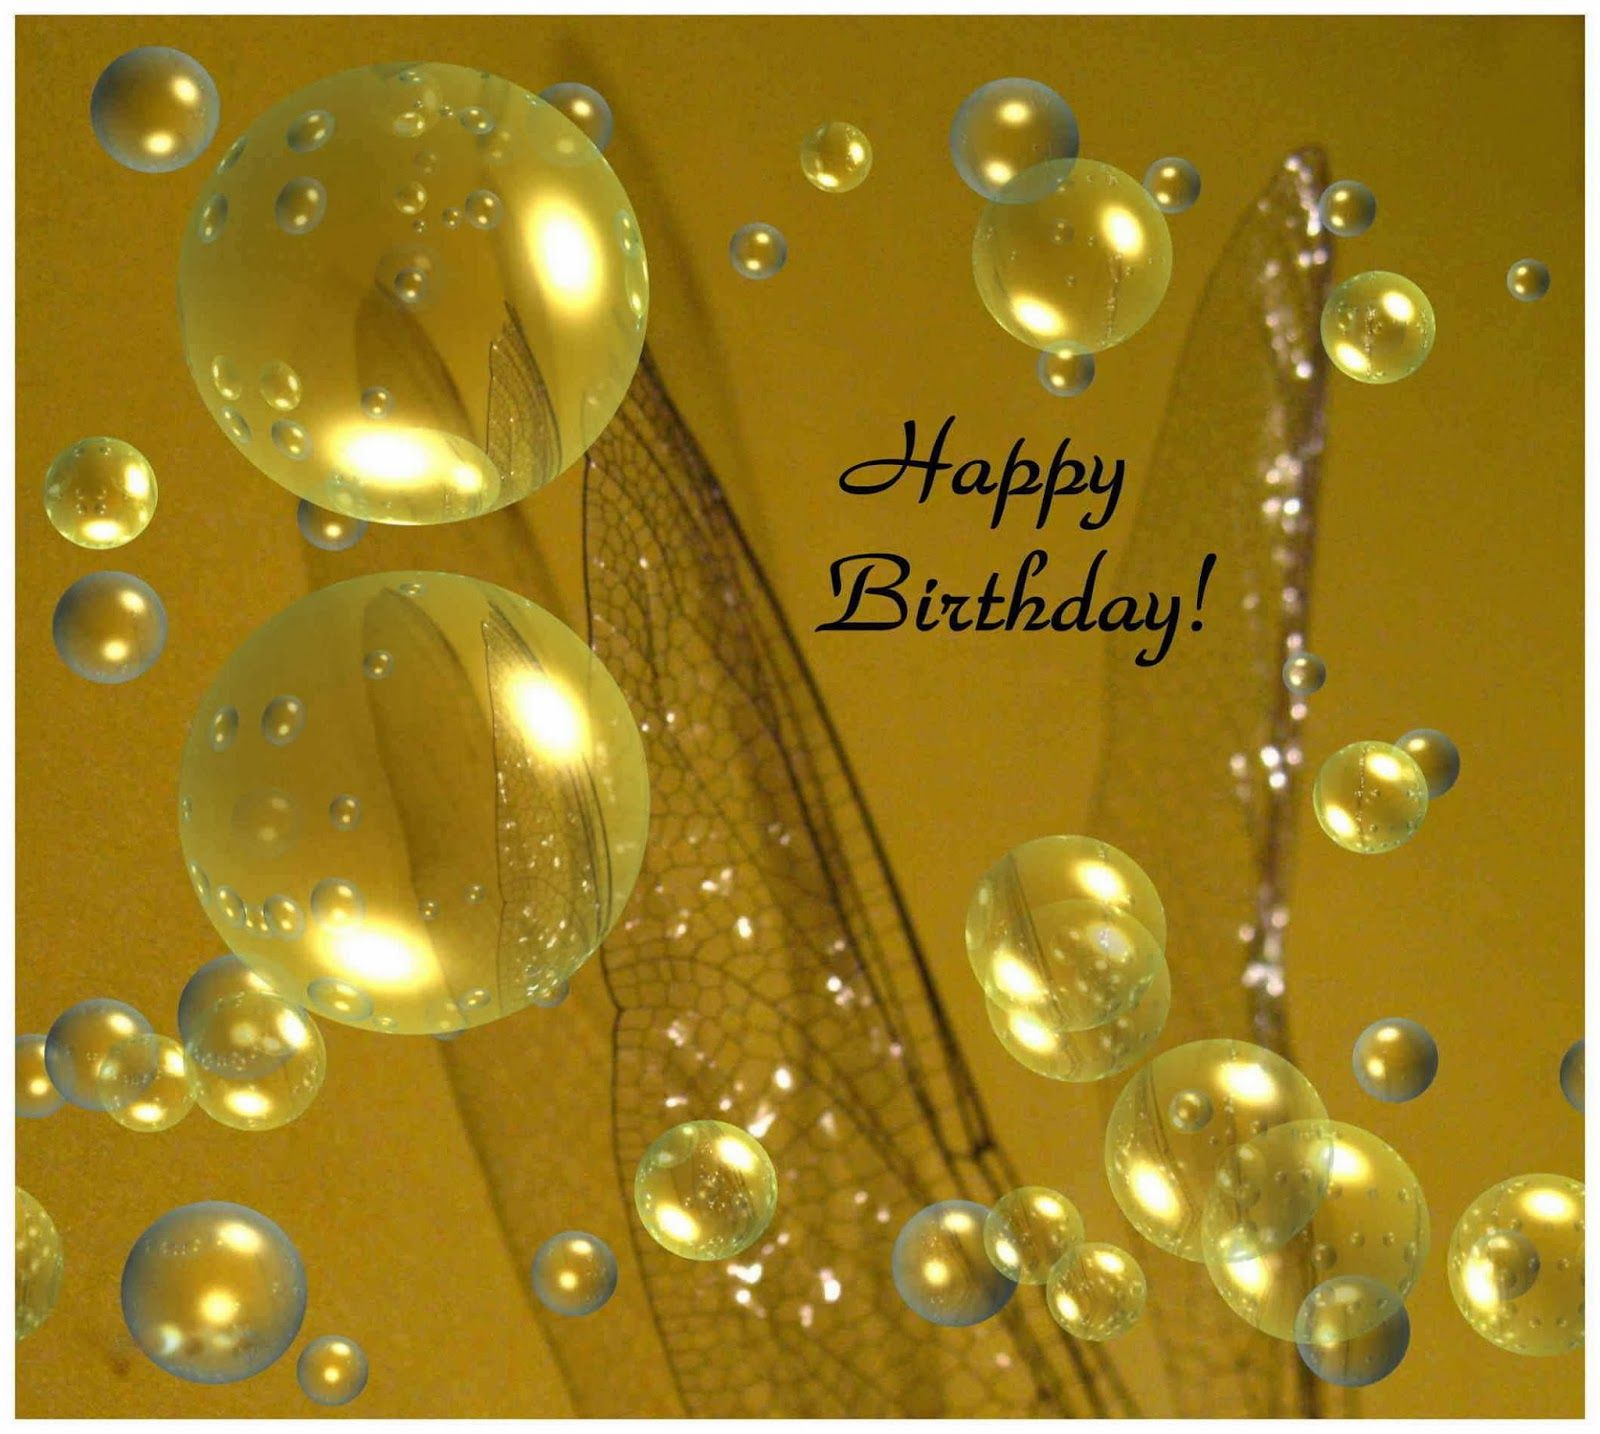 Image result for birthday wallpaper hd birthday wallpaper happy birthday wallpaper voltagebd Images